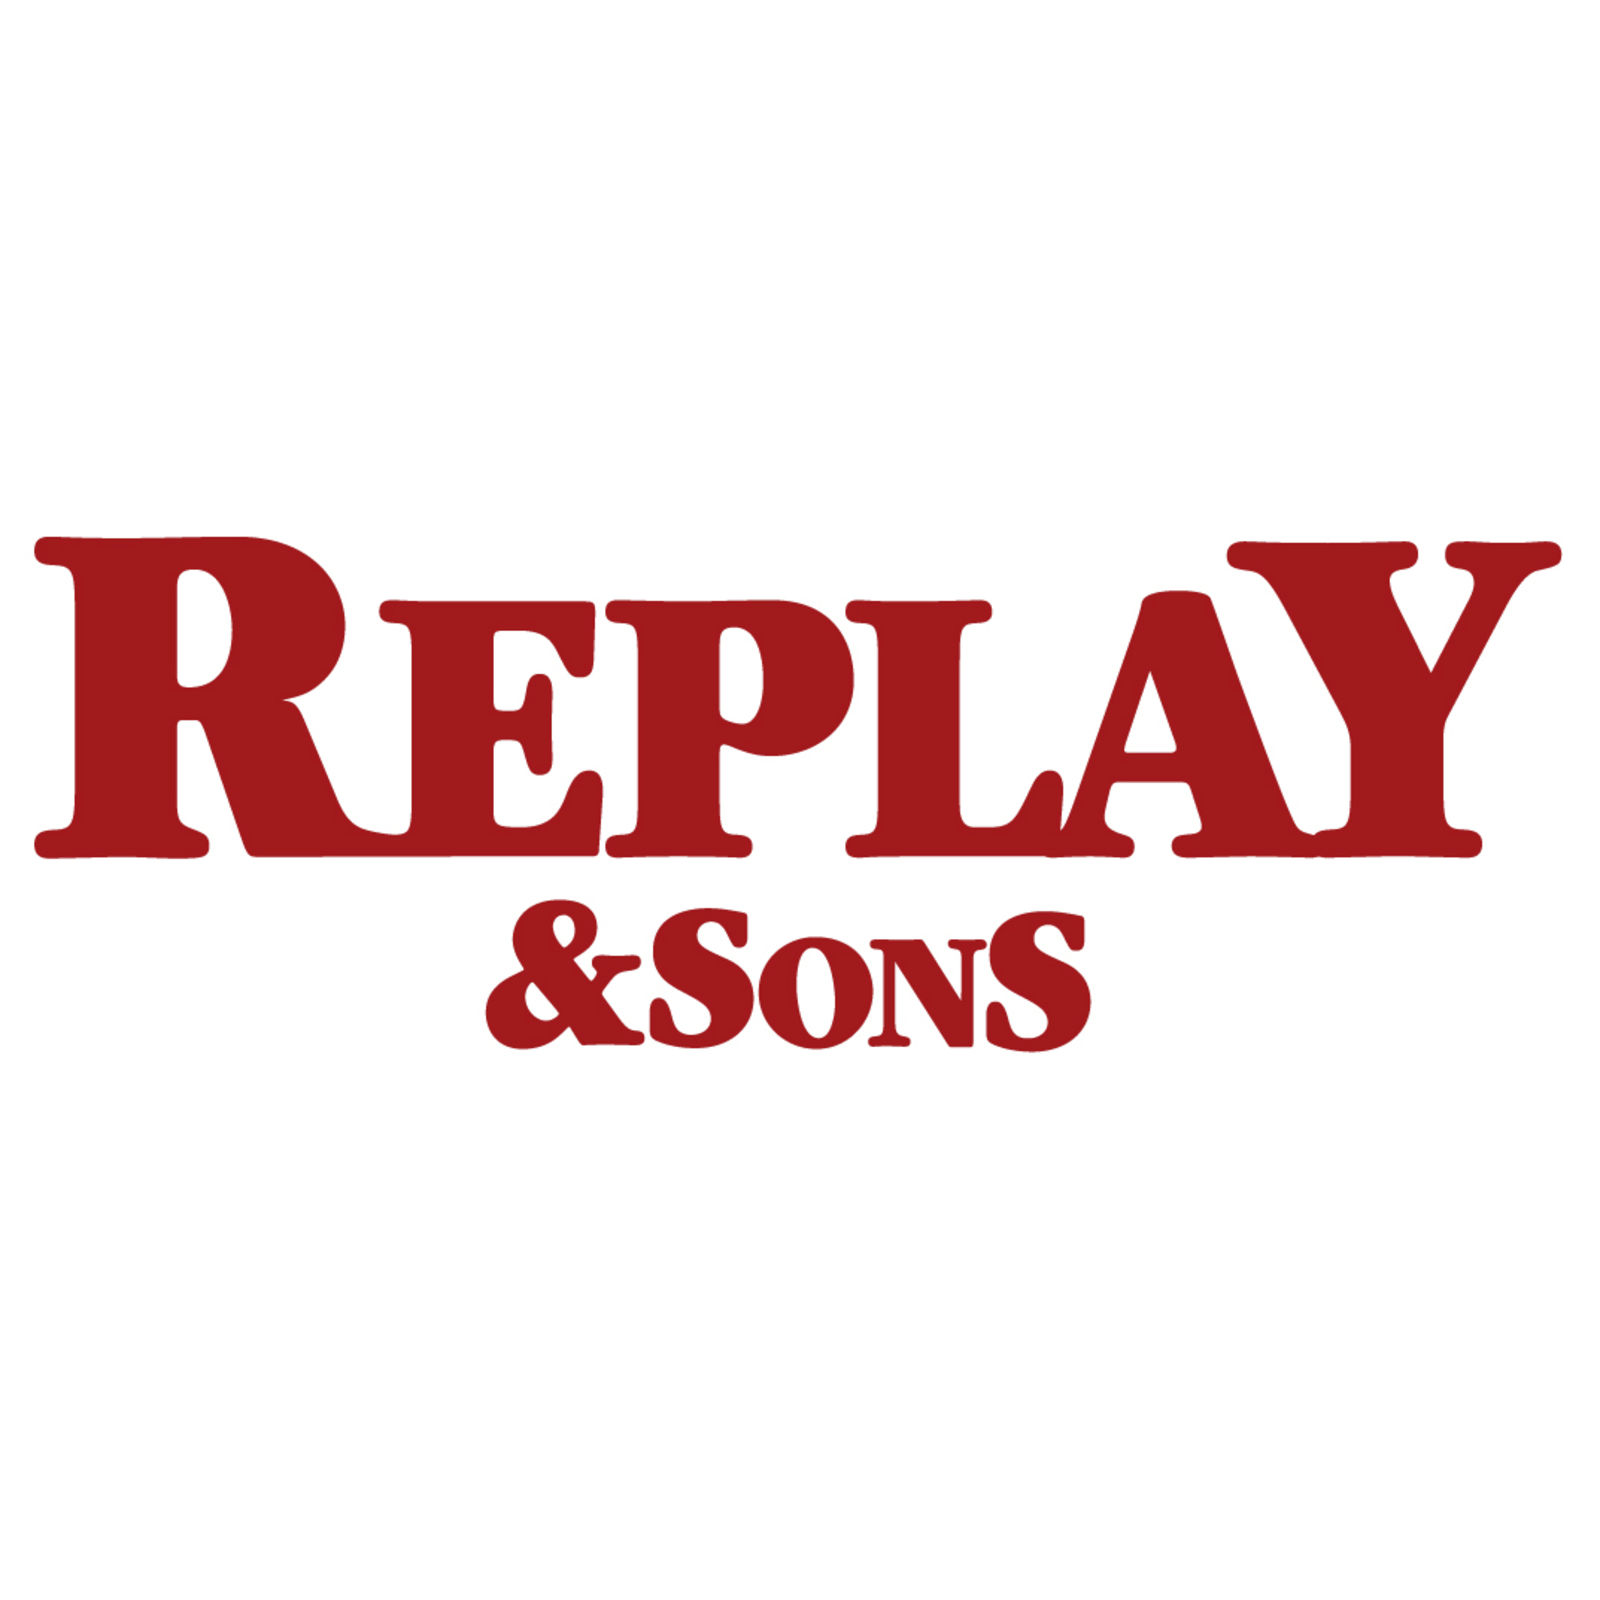 REPLAY & SONS (Bild 1)